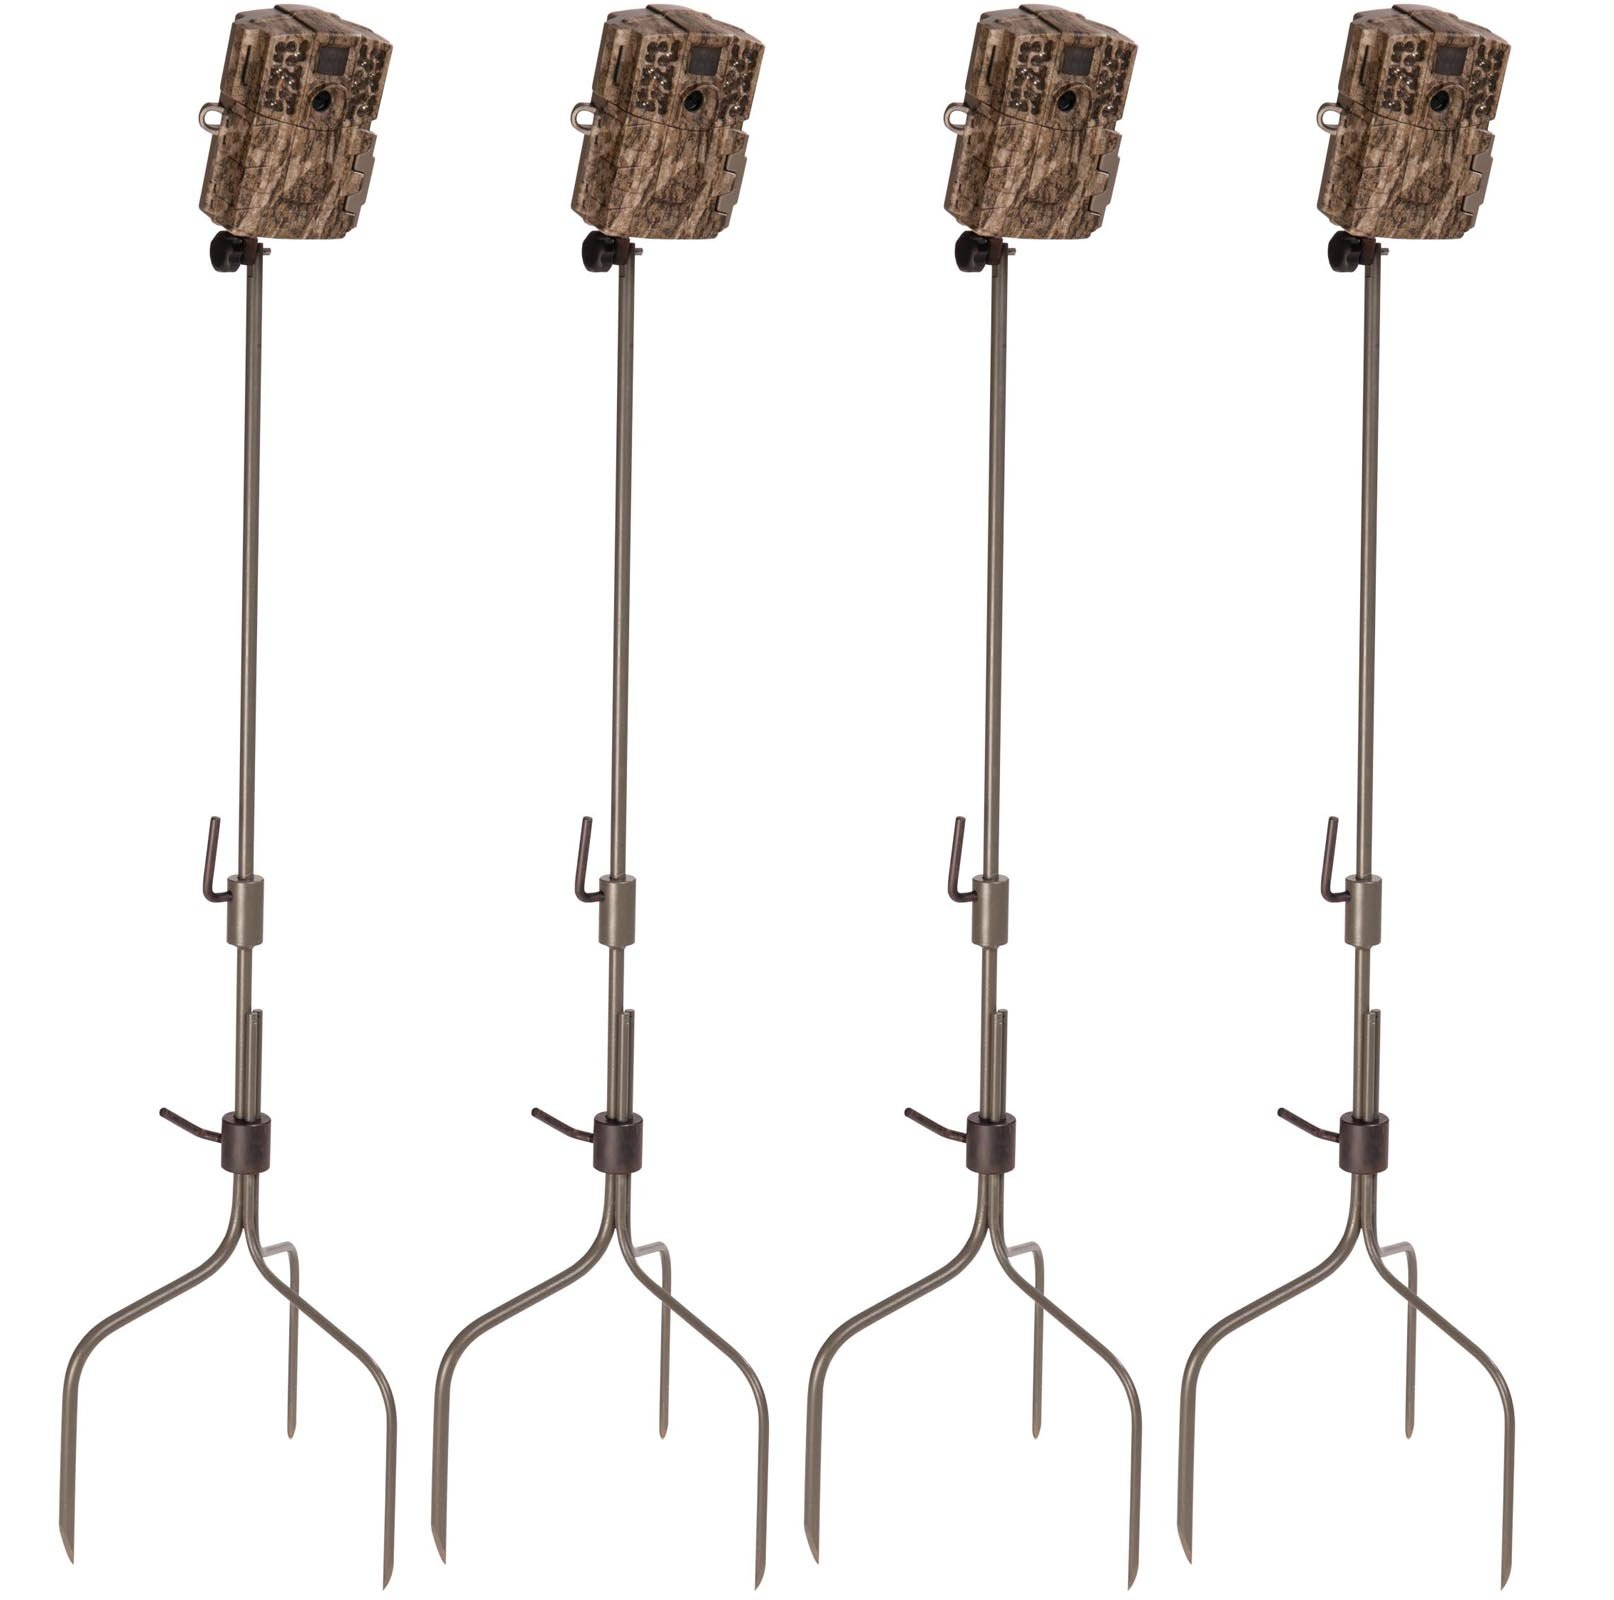 (4) Moultrie Universal Infrared Game Hunting Camera Steel Stakes   MCA-13051